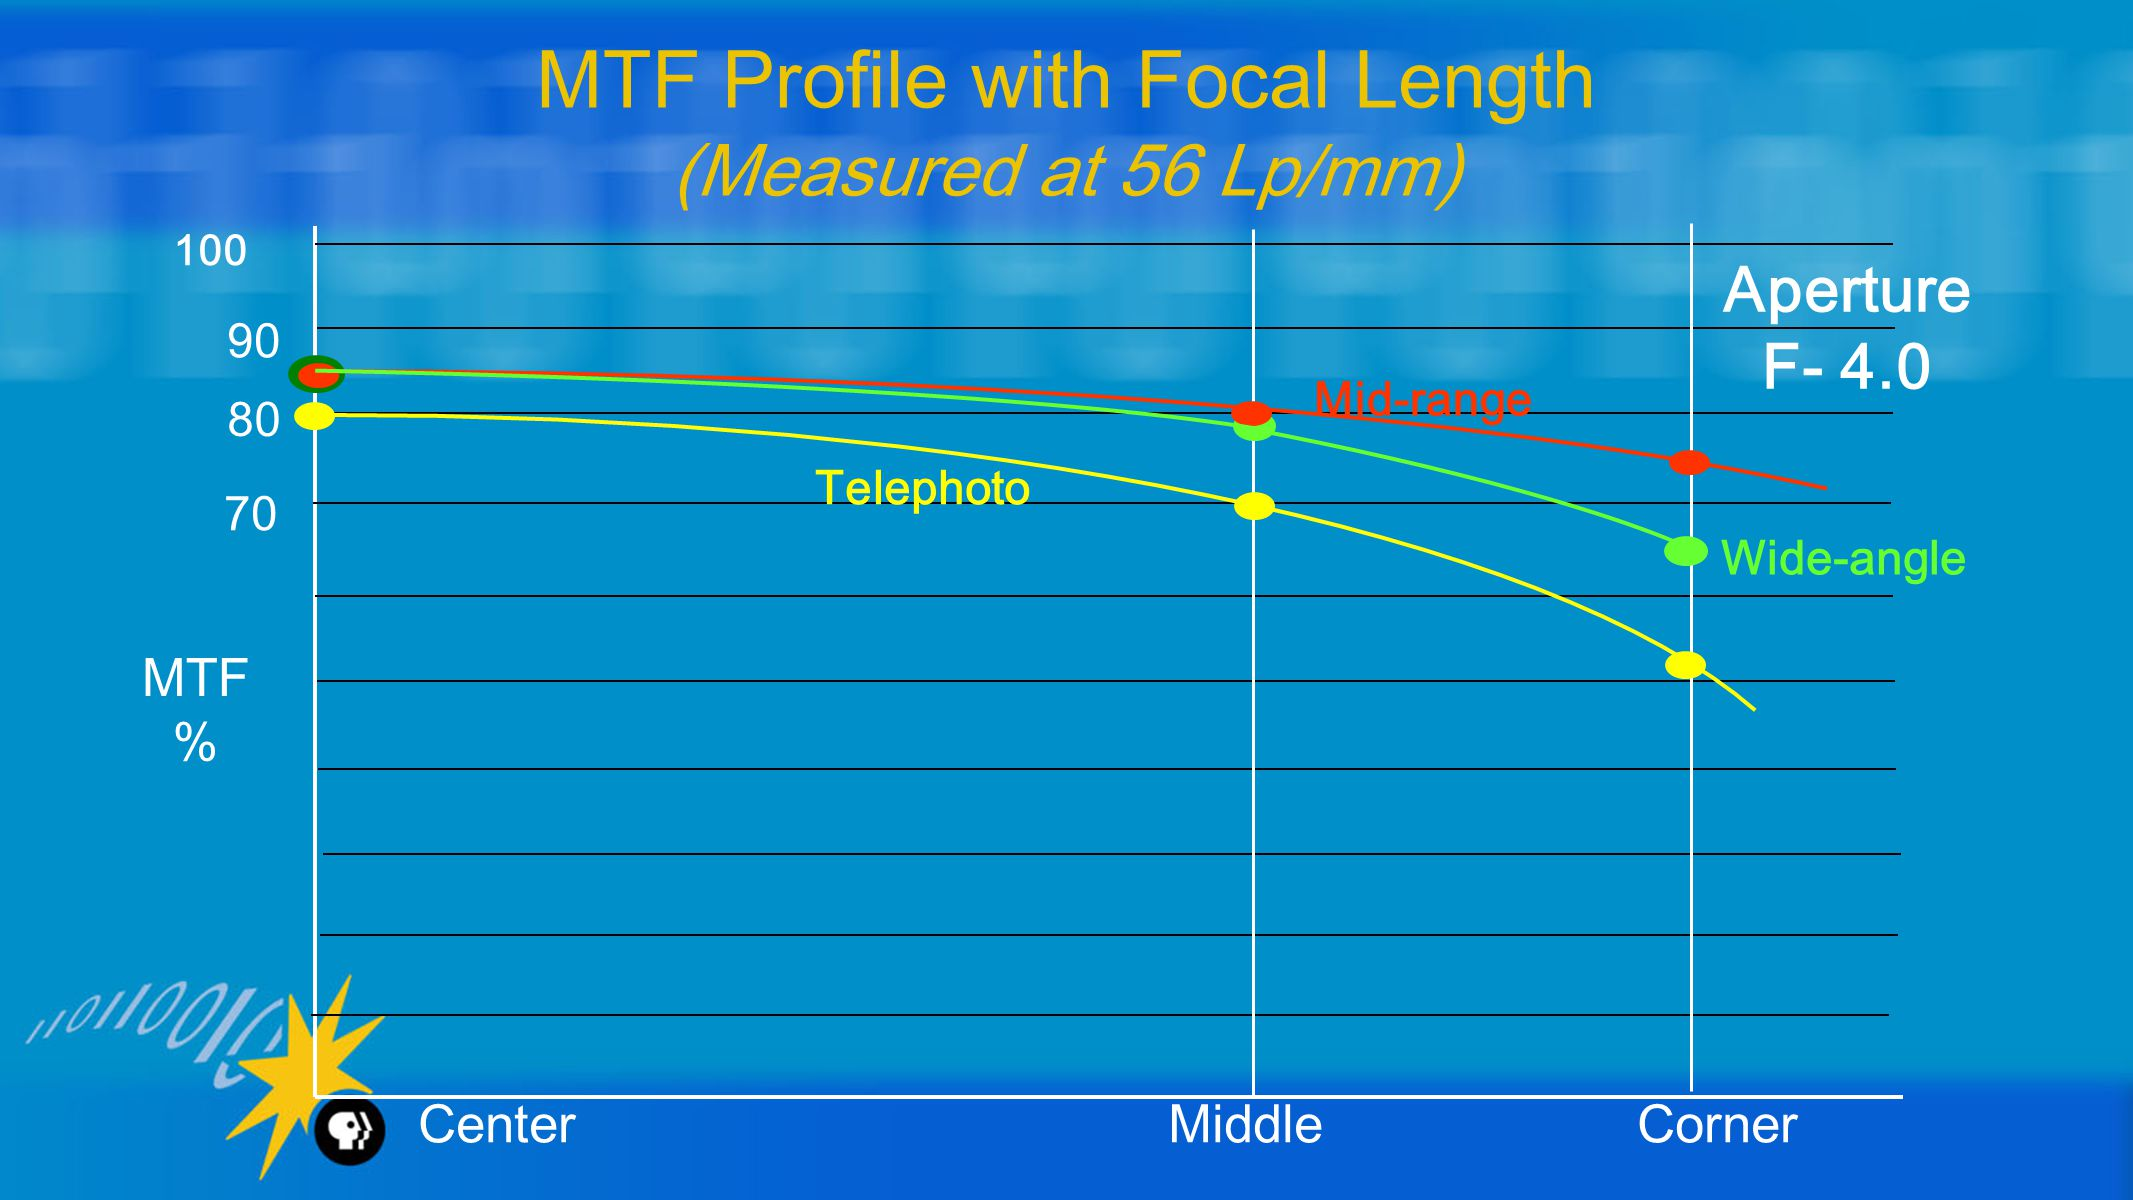 MTF Profile with Focal Length (Measured at 56 Lp/mm) 100 90 80 70 Wide-angle Telephoto Mid-range MTF % Center Middle Corner Aperture F- 4.0